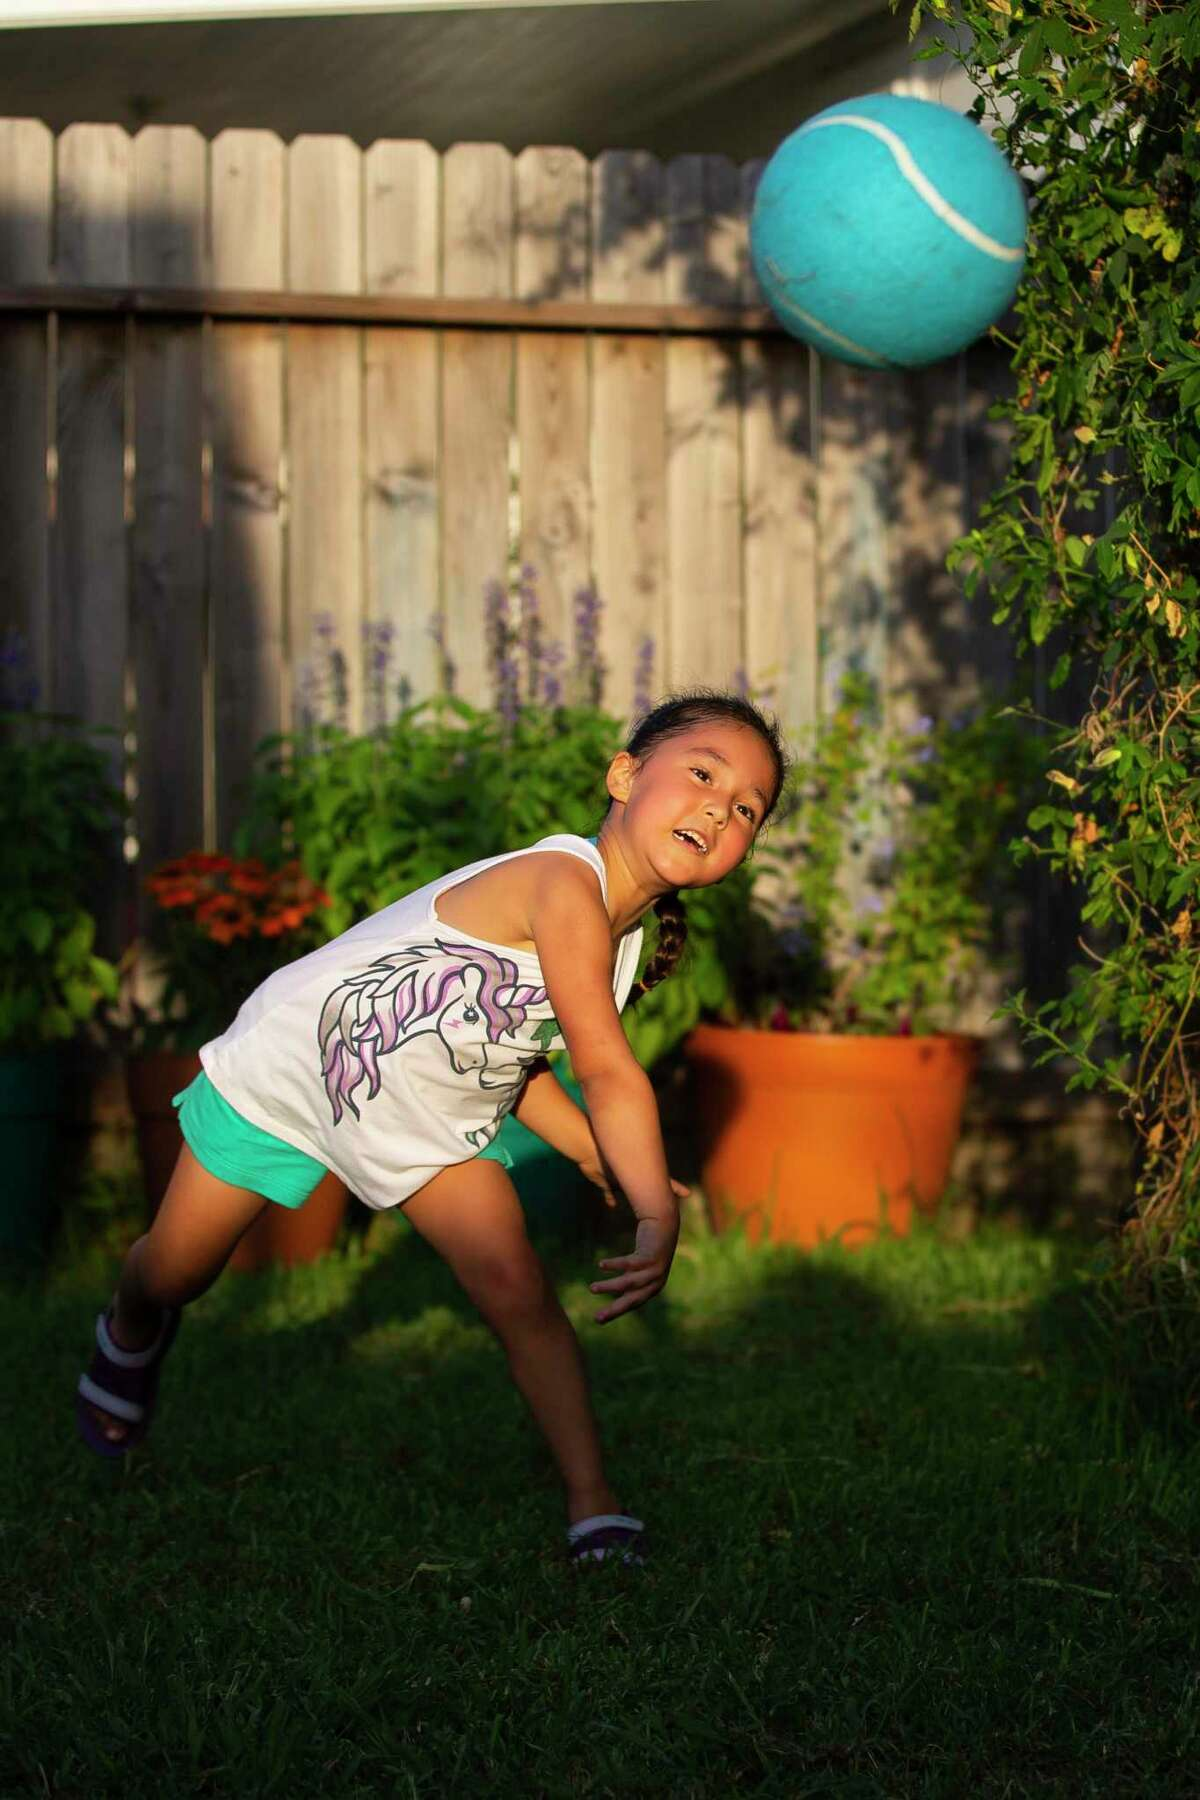 Eliza Burke throws a ball to her mom, Norma, while playing in the backyard.